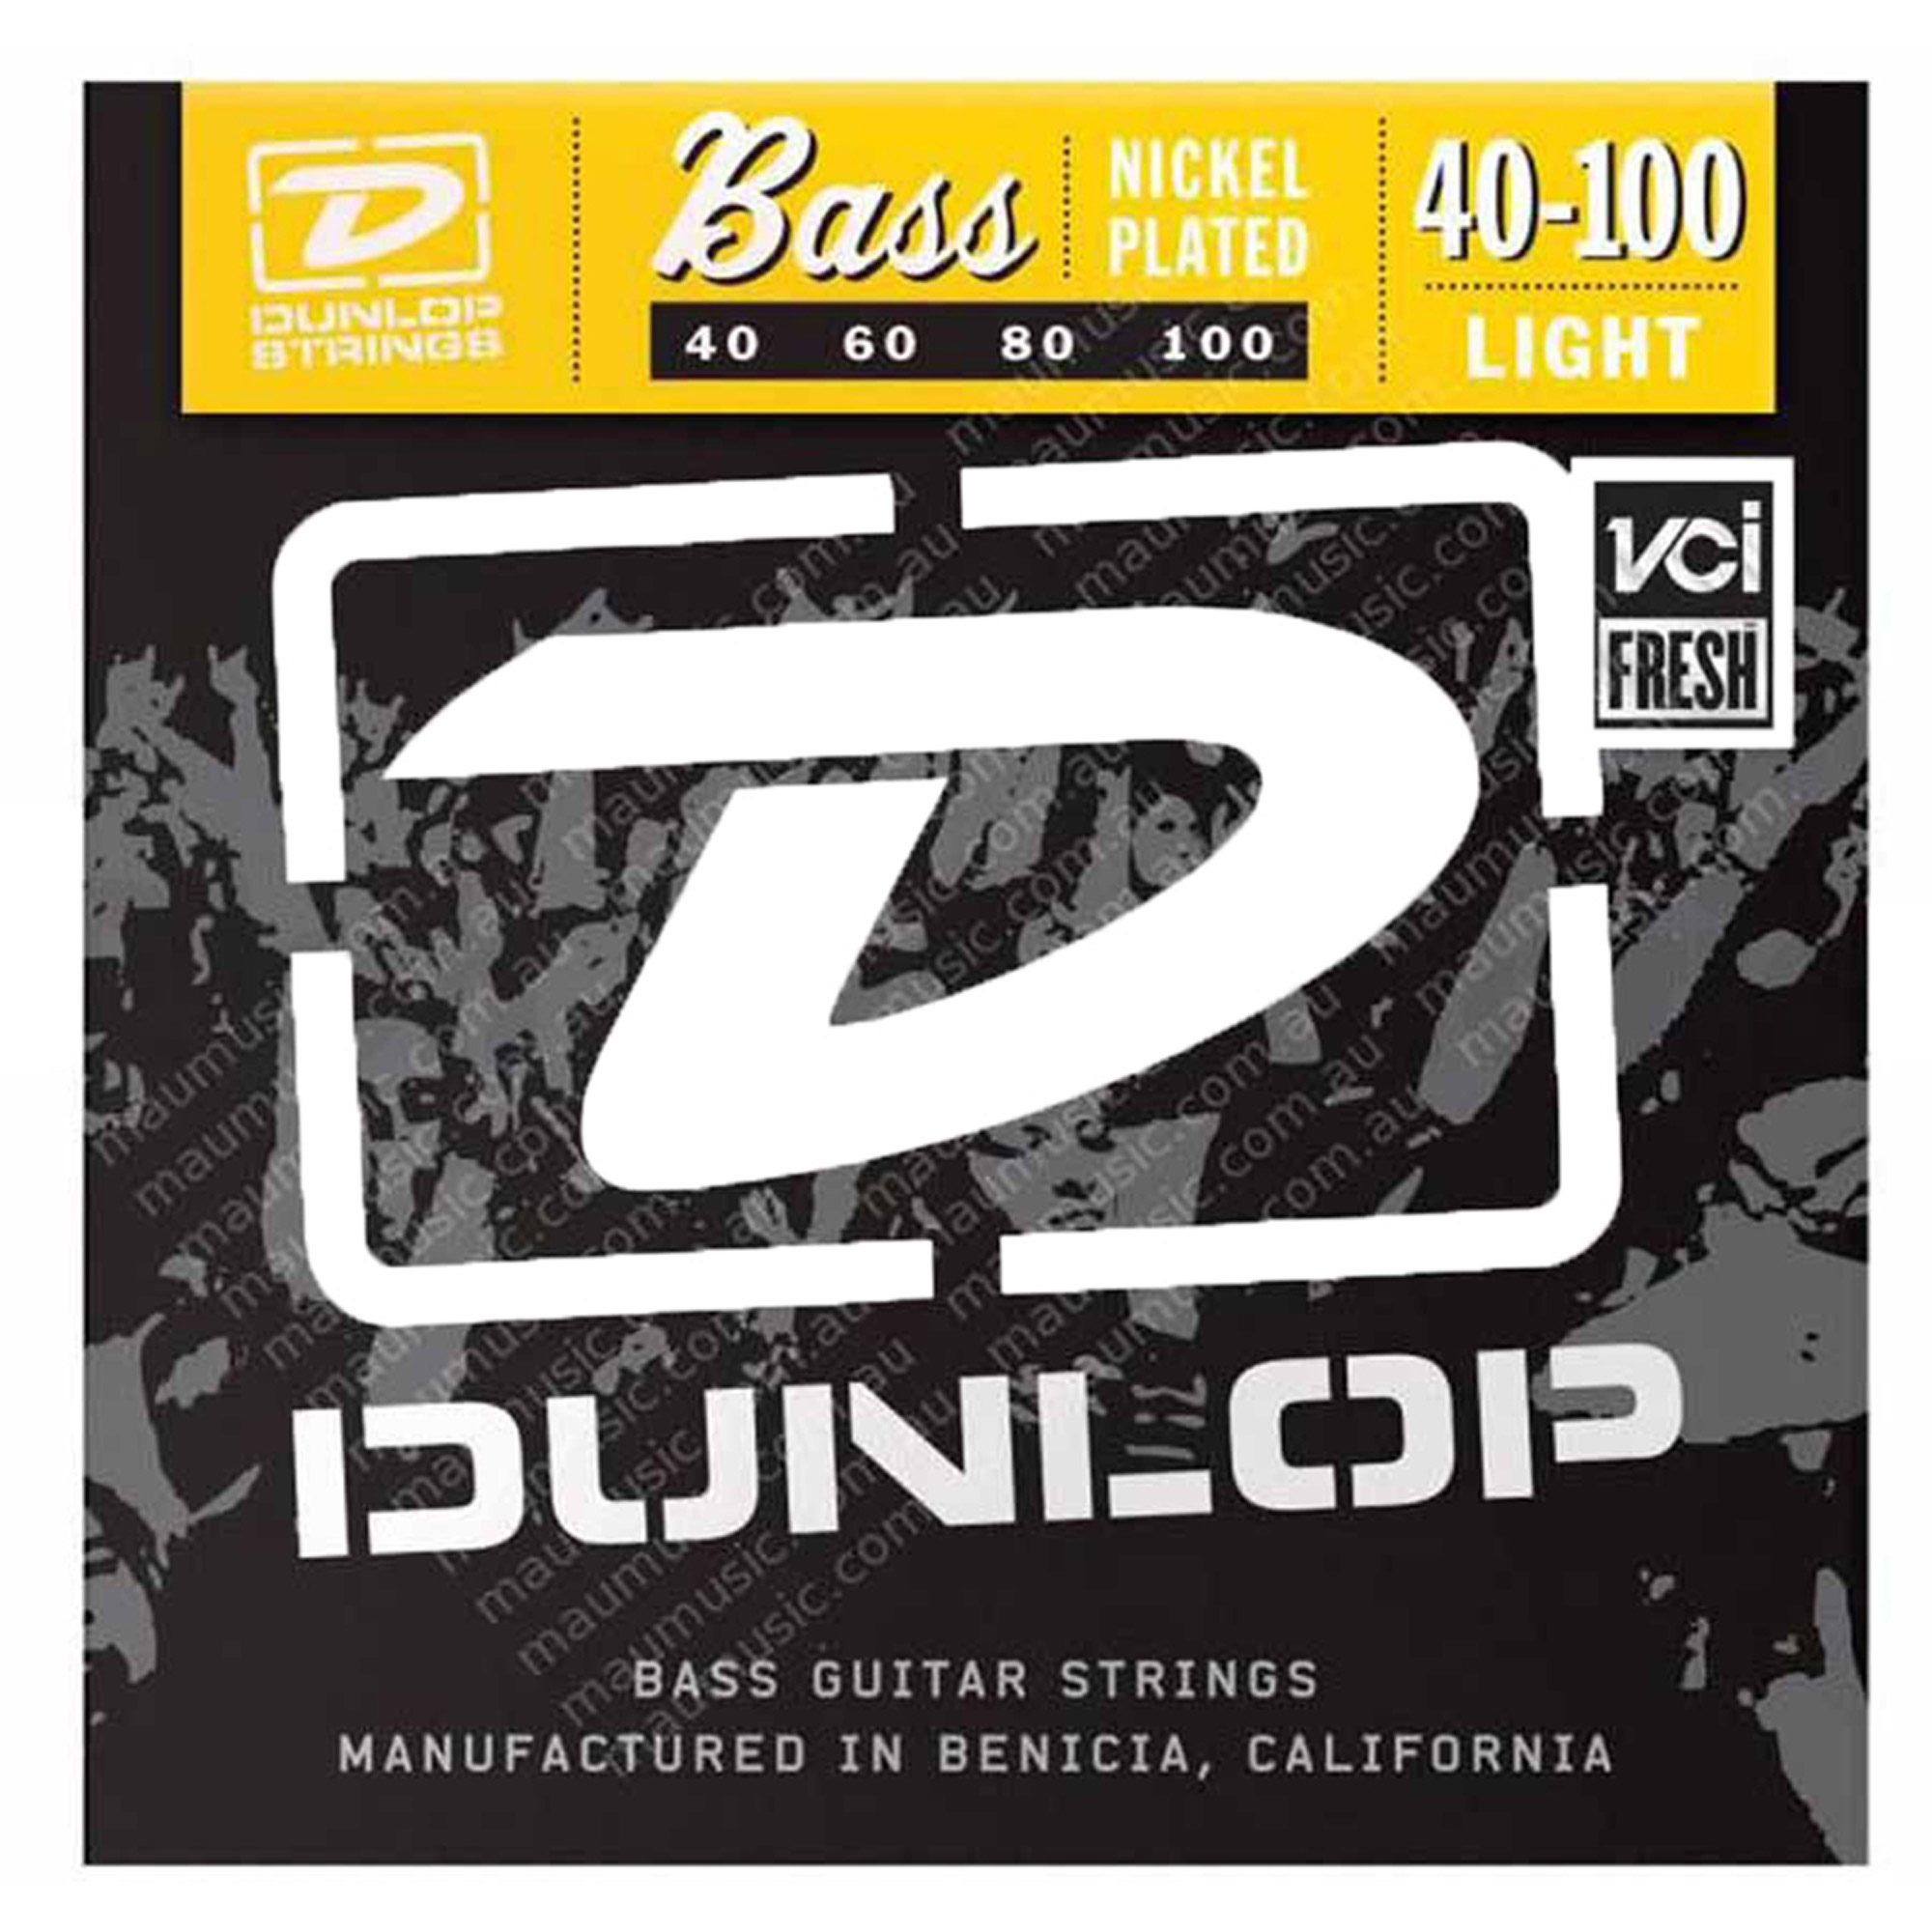 Dunlop DBN40100 Nickel Light 4 String Stainless Steel Bass Guitar Strings .40-.100 by Dunlop